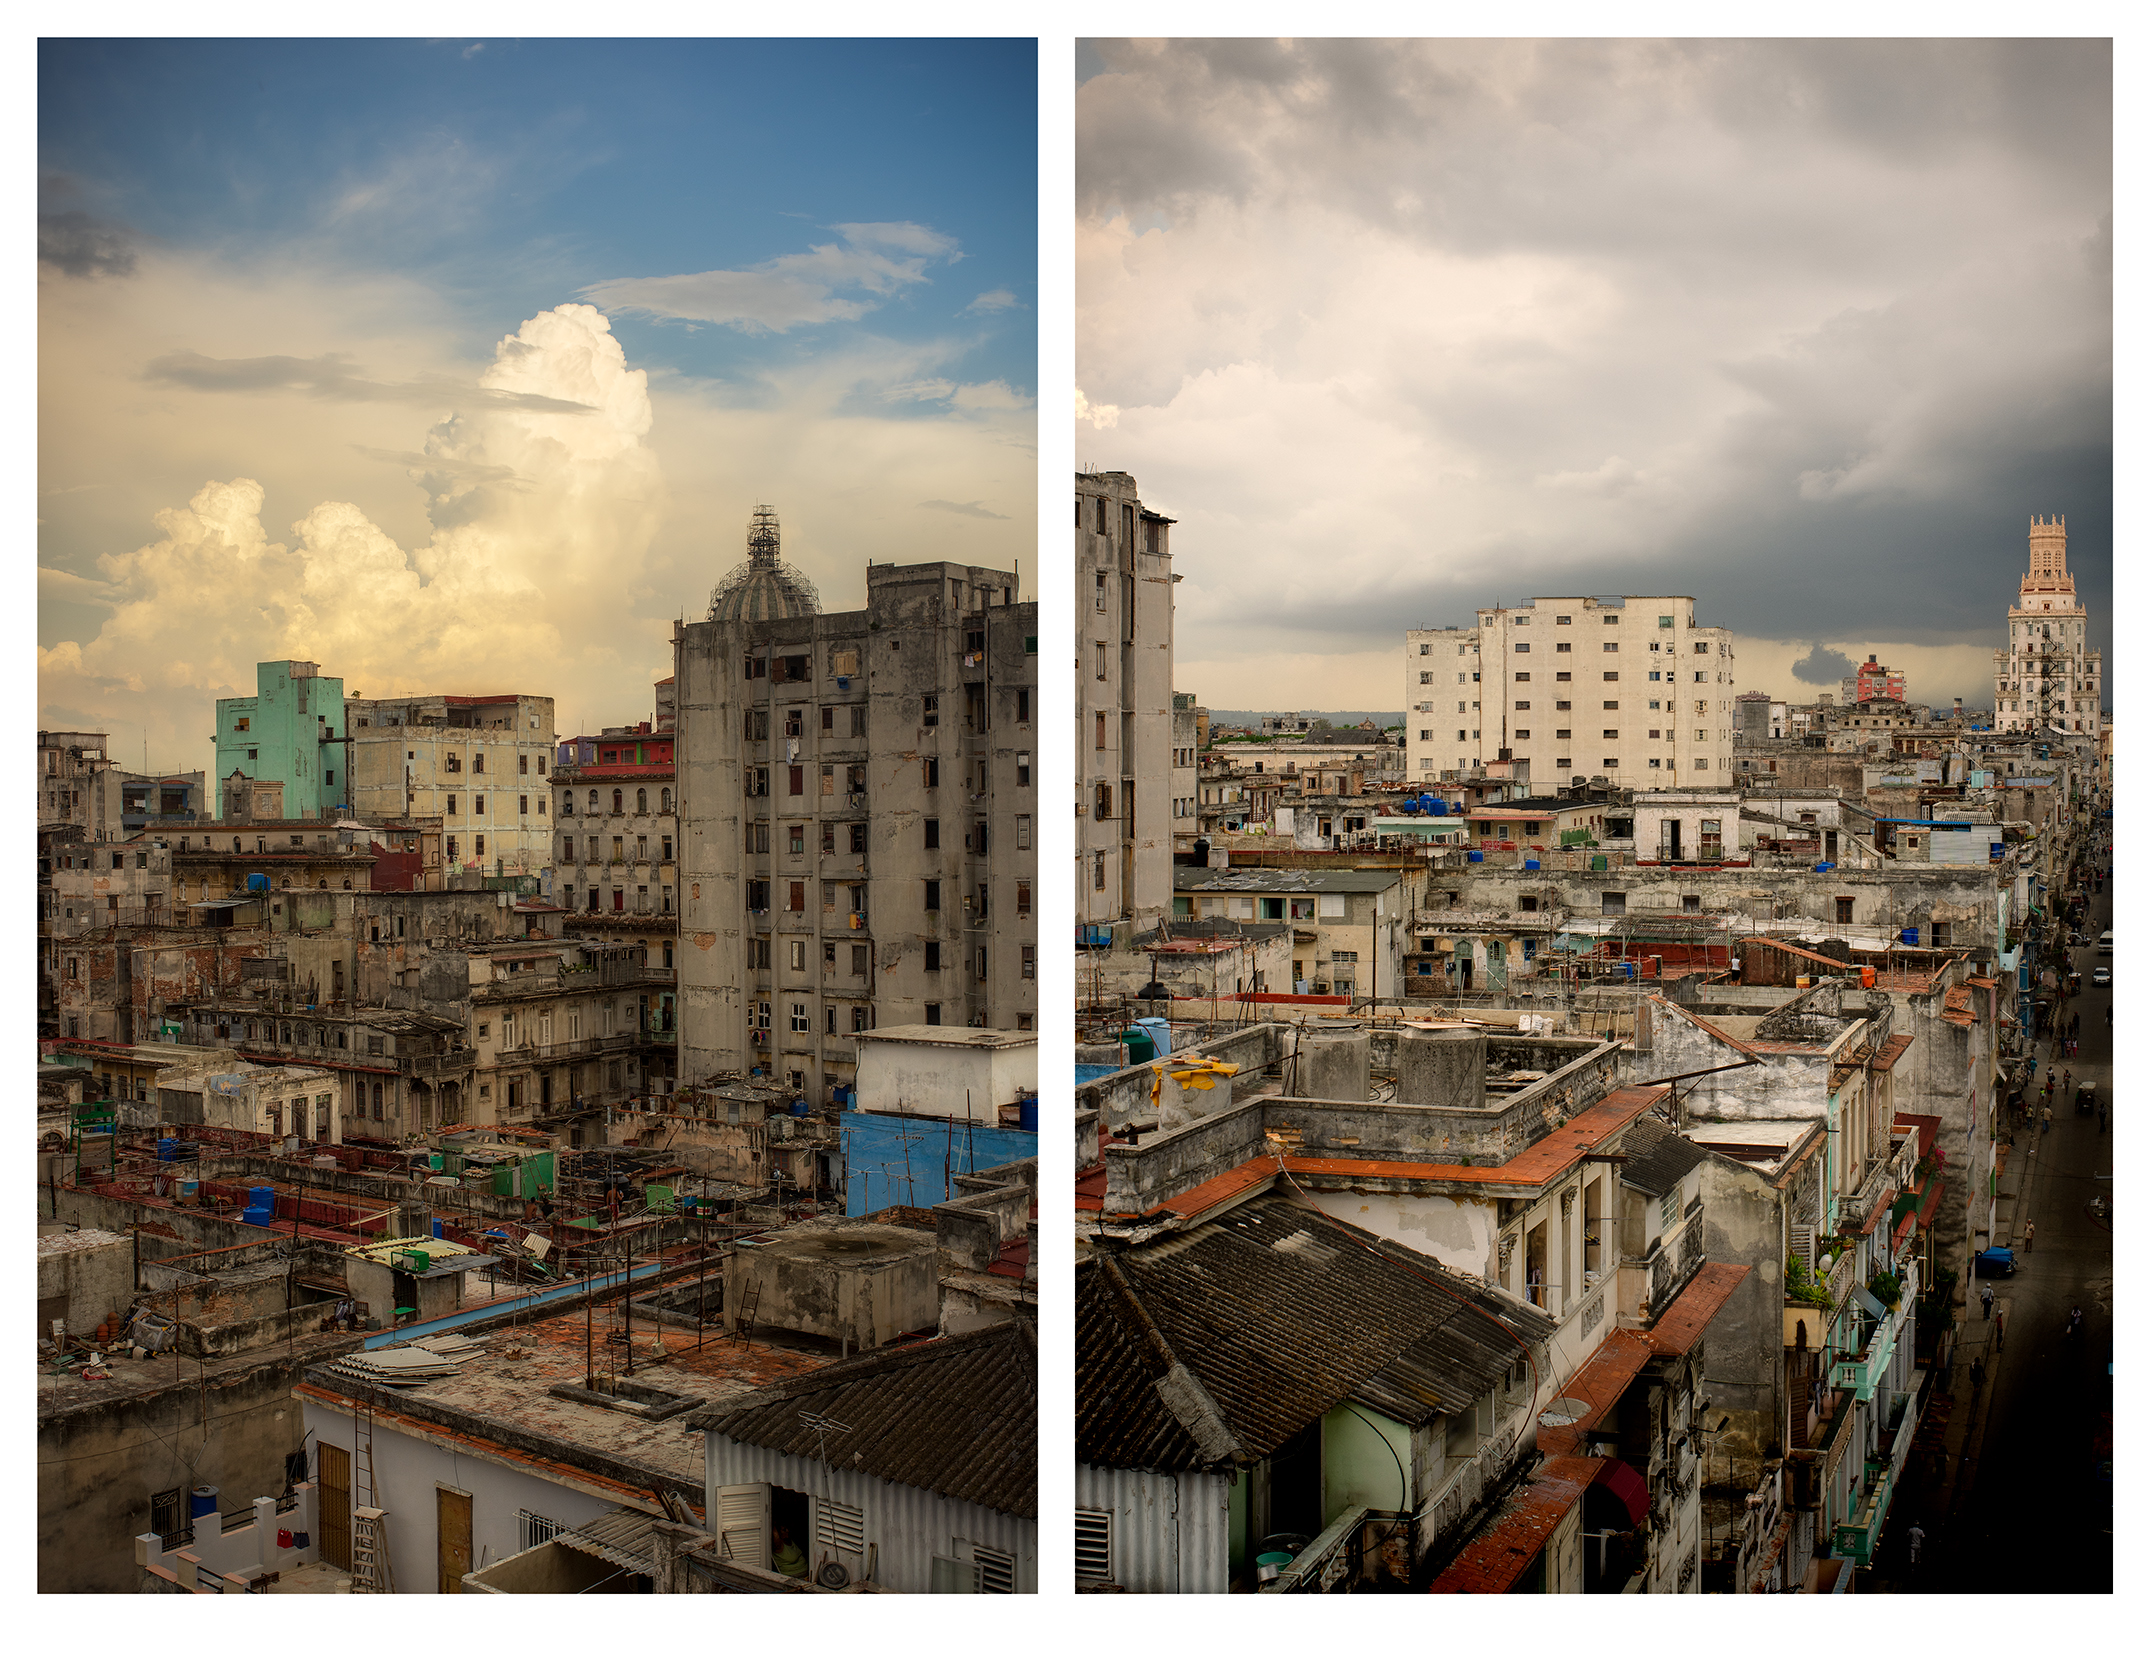 (L) The Beautiful Decay | (R) From My Balcony, No.3